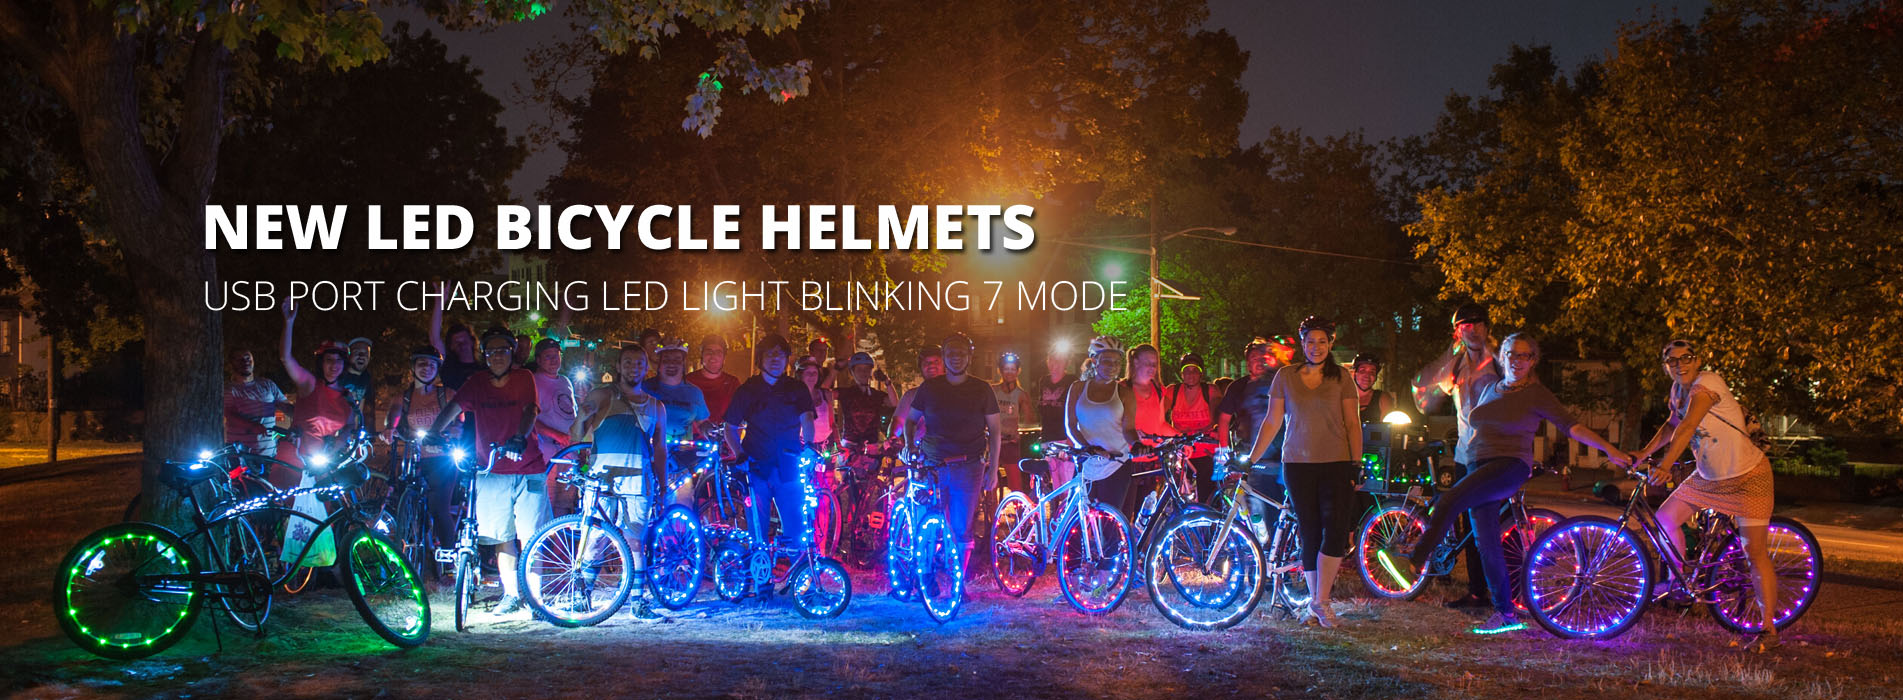 LED bike helmets R6